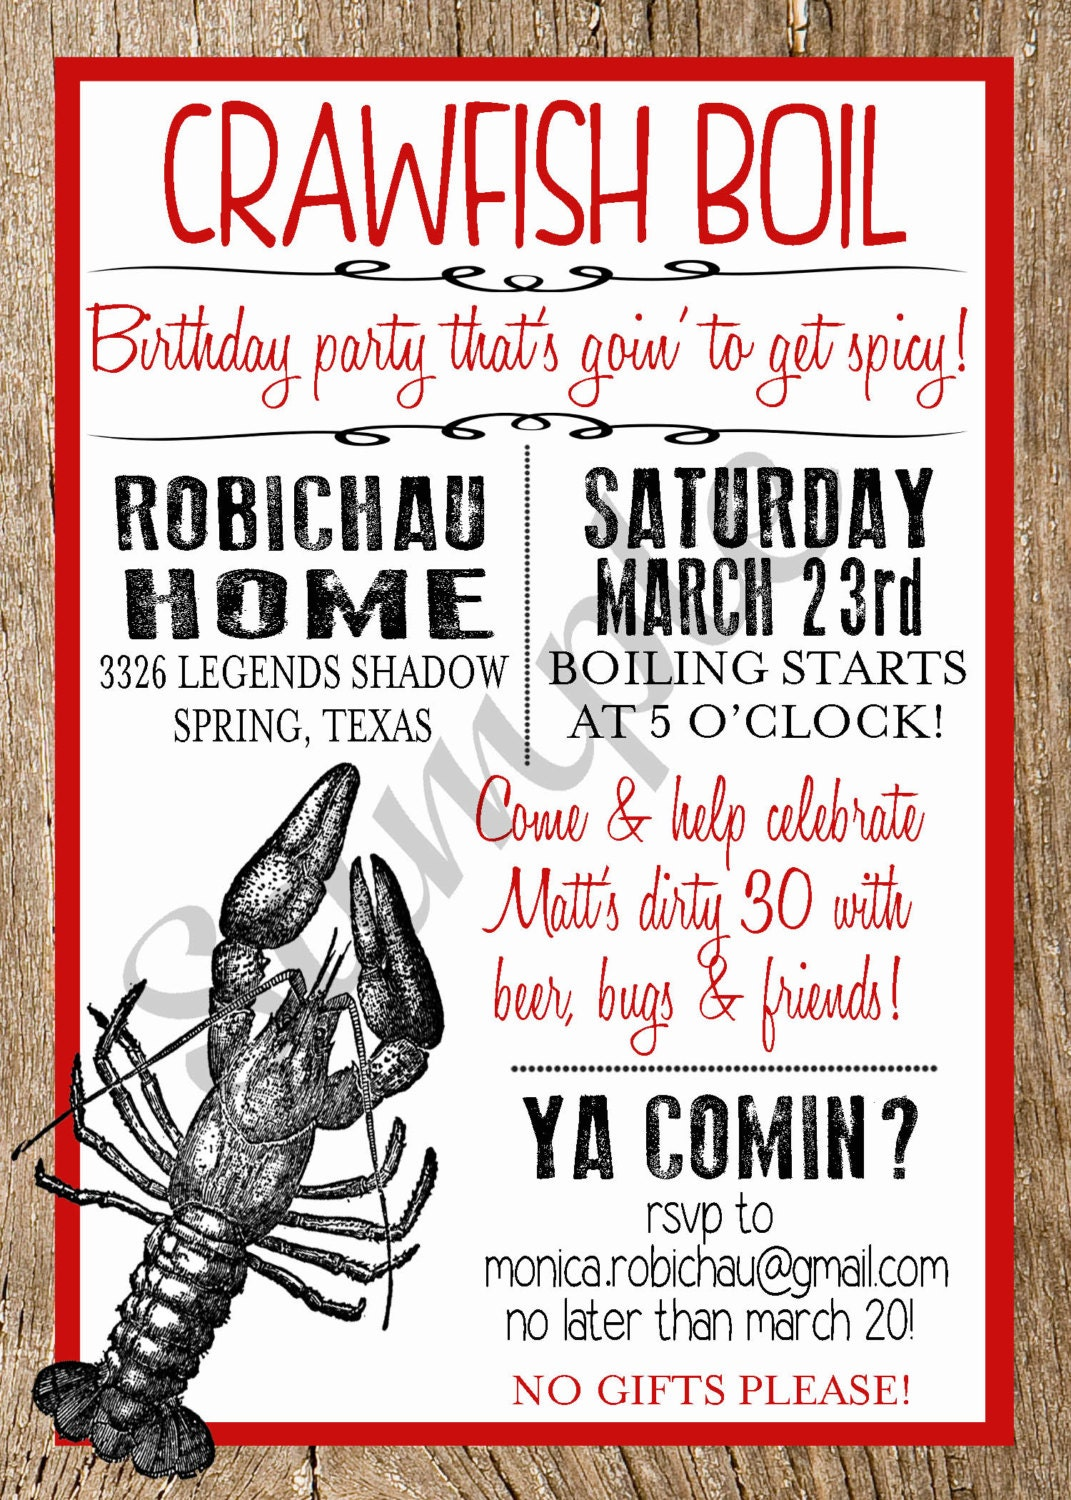 This is a picture of Luscious Crawfish Boil Invitations Free Printable